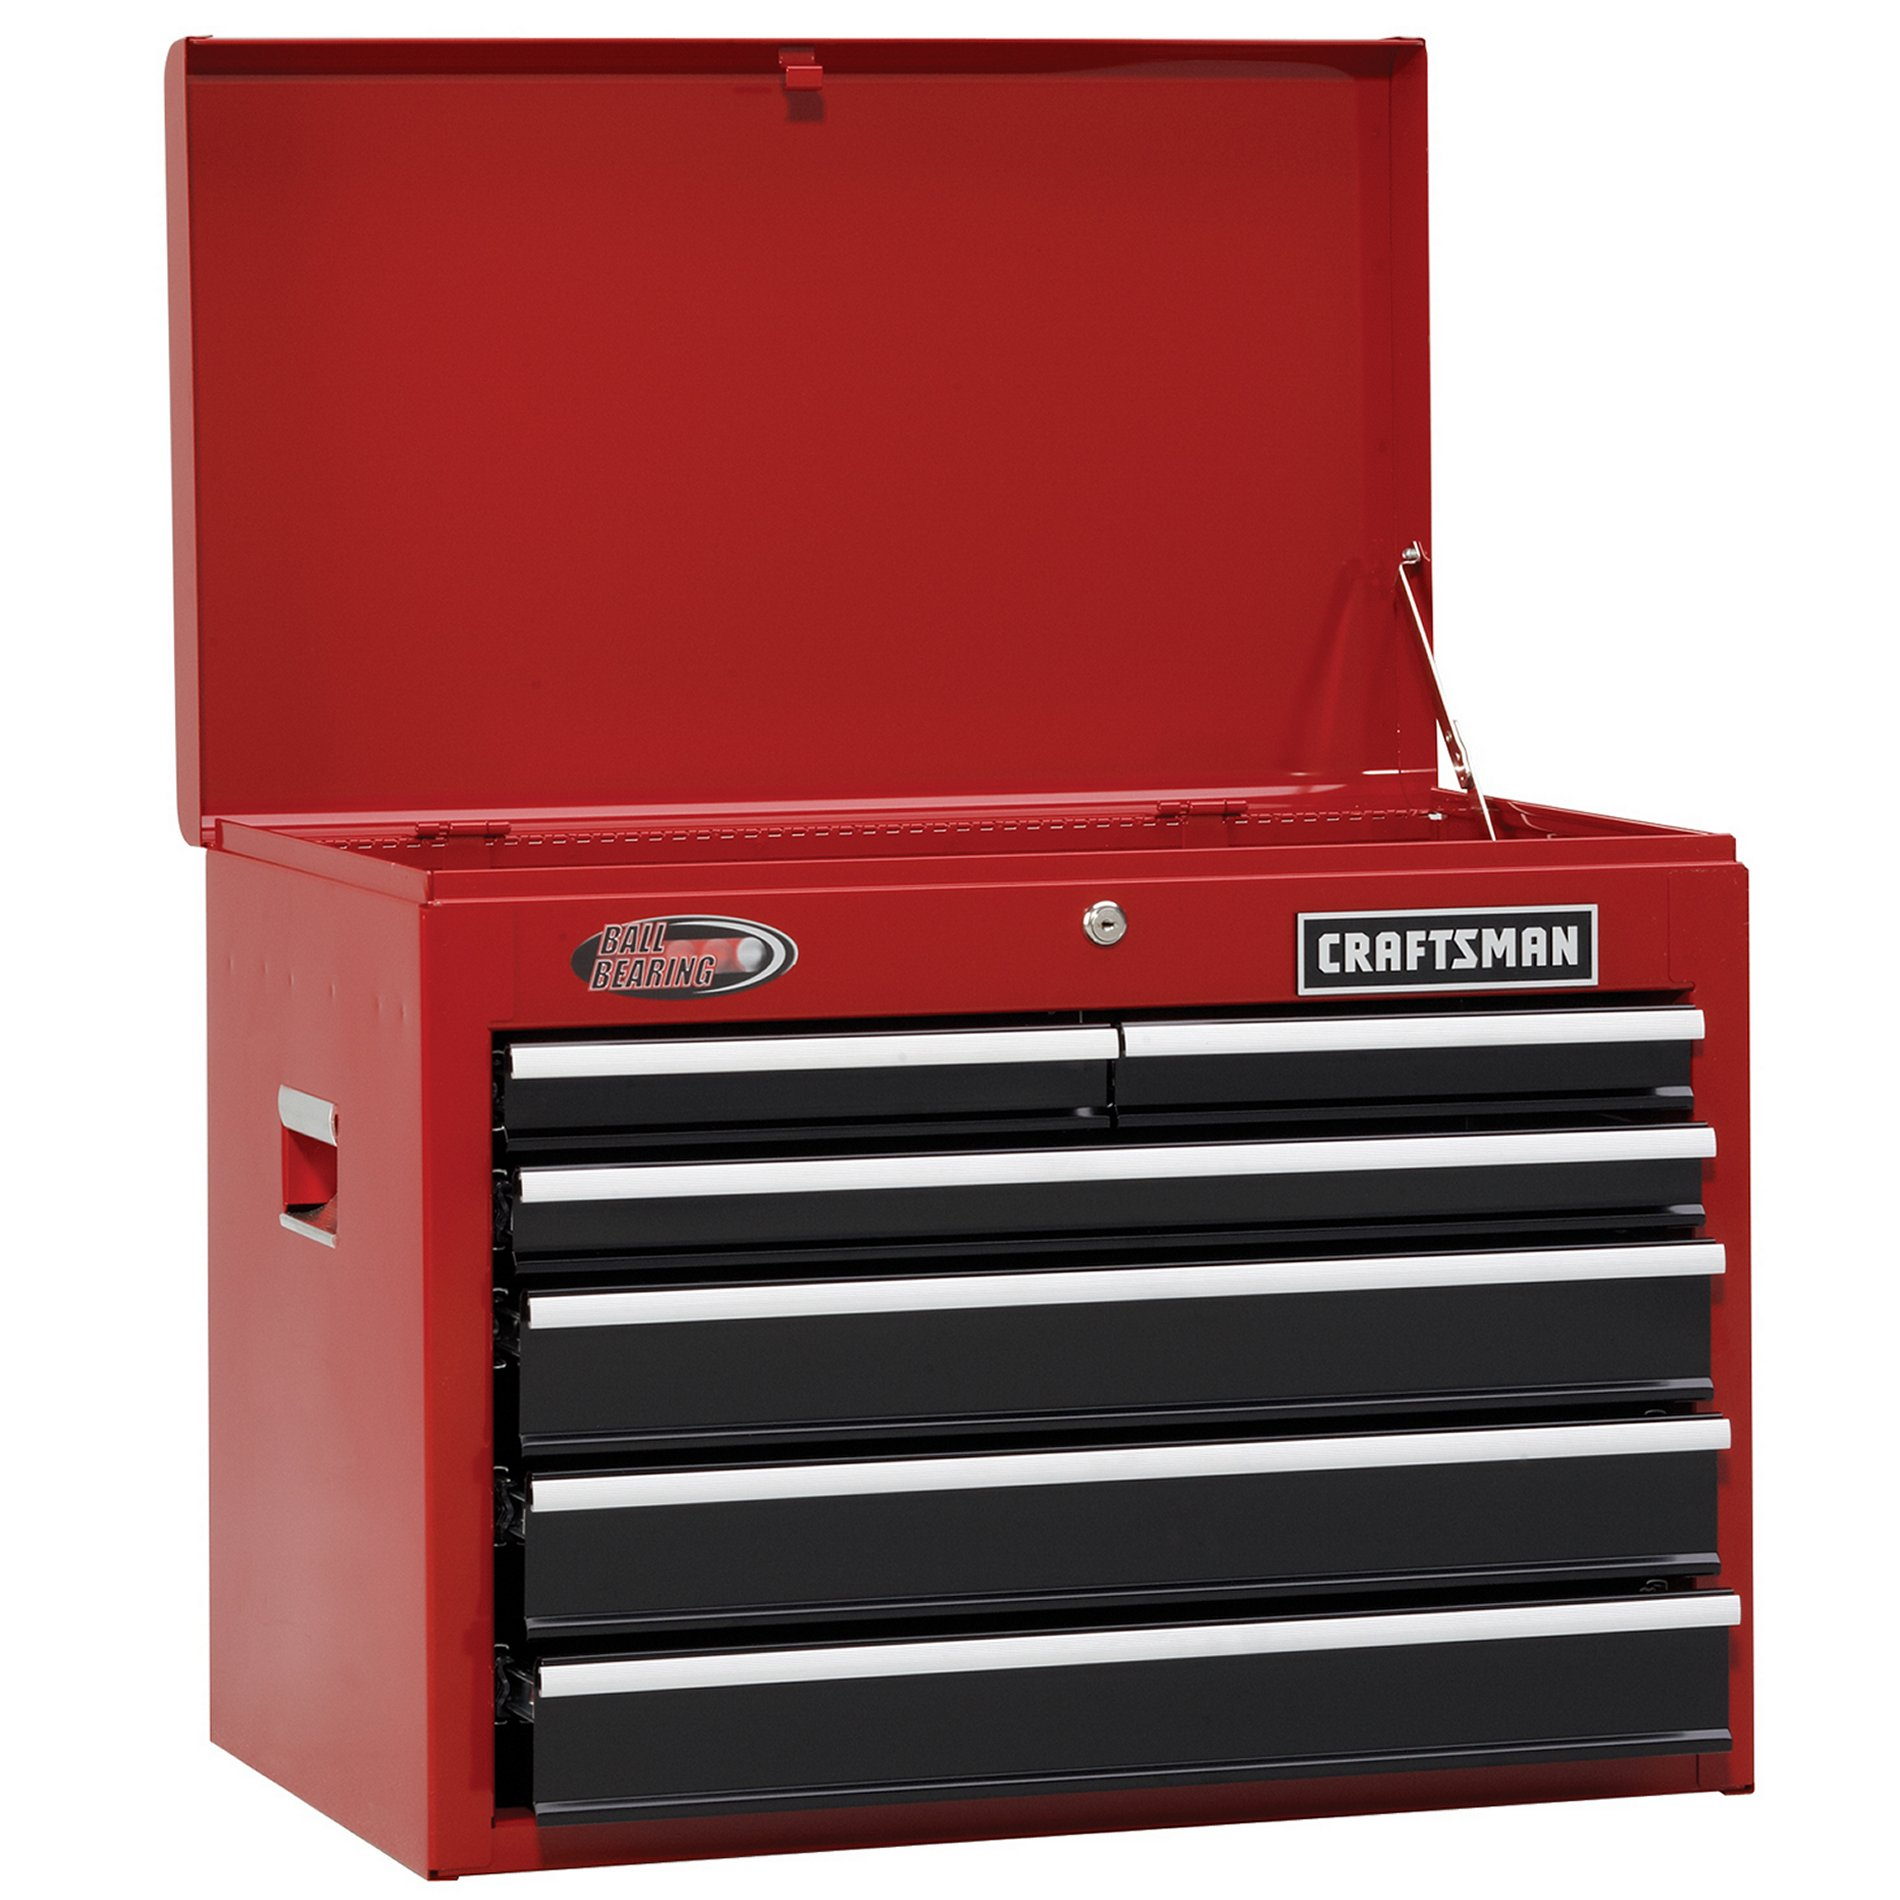 Craftsman 26 Wide 6 Drawer Ball Bearing Top Chest Red